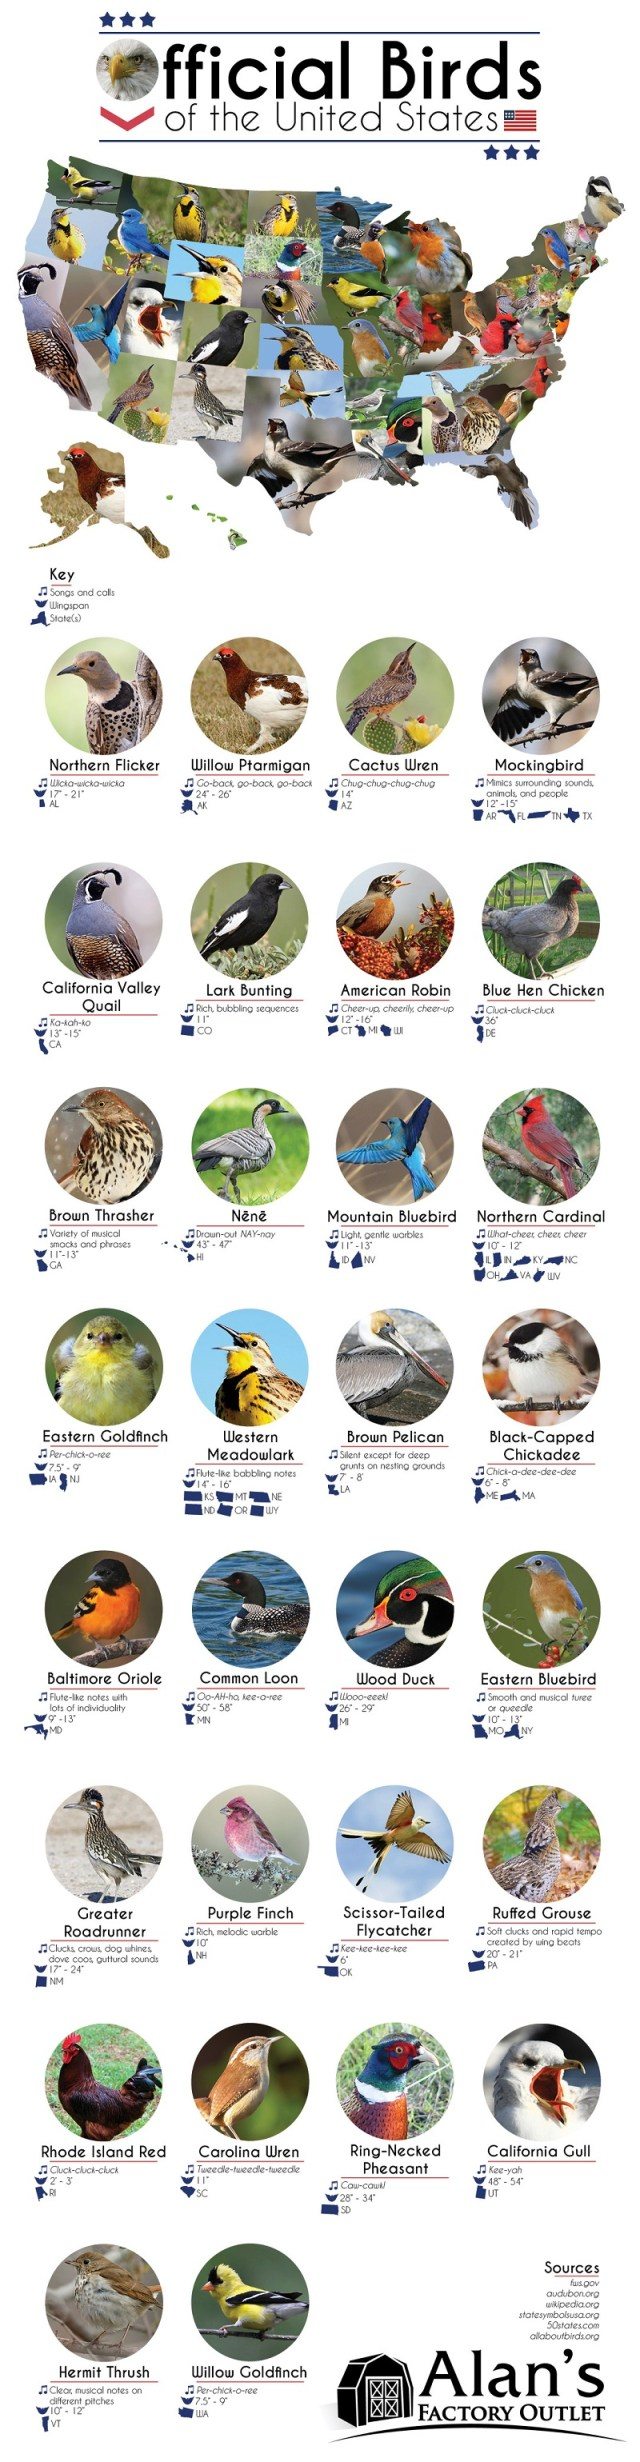 Official Birds of the United States